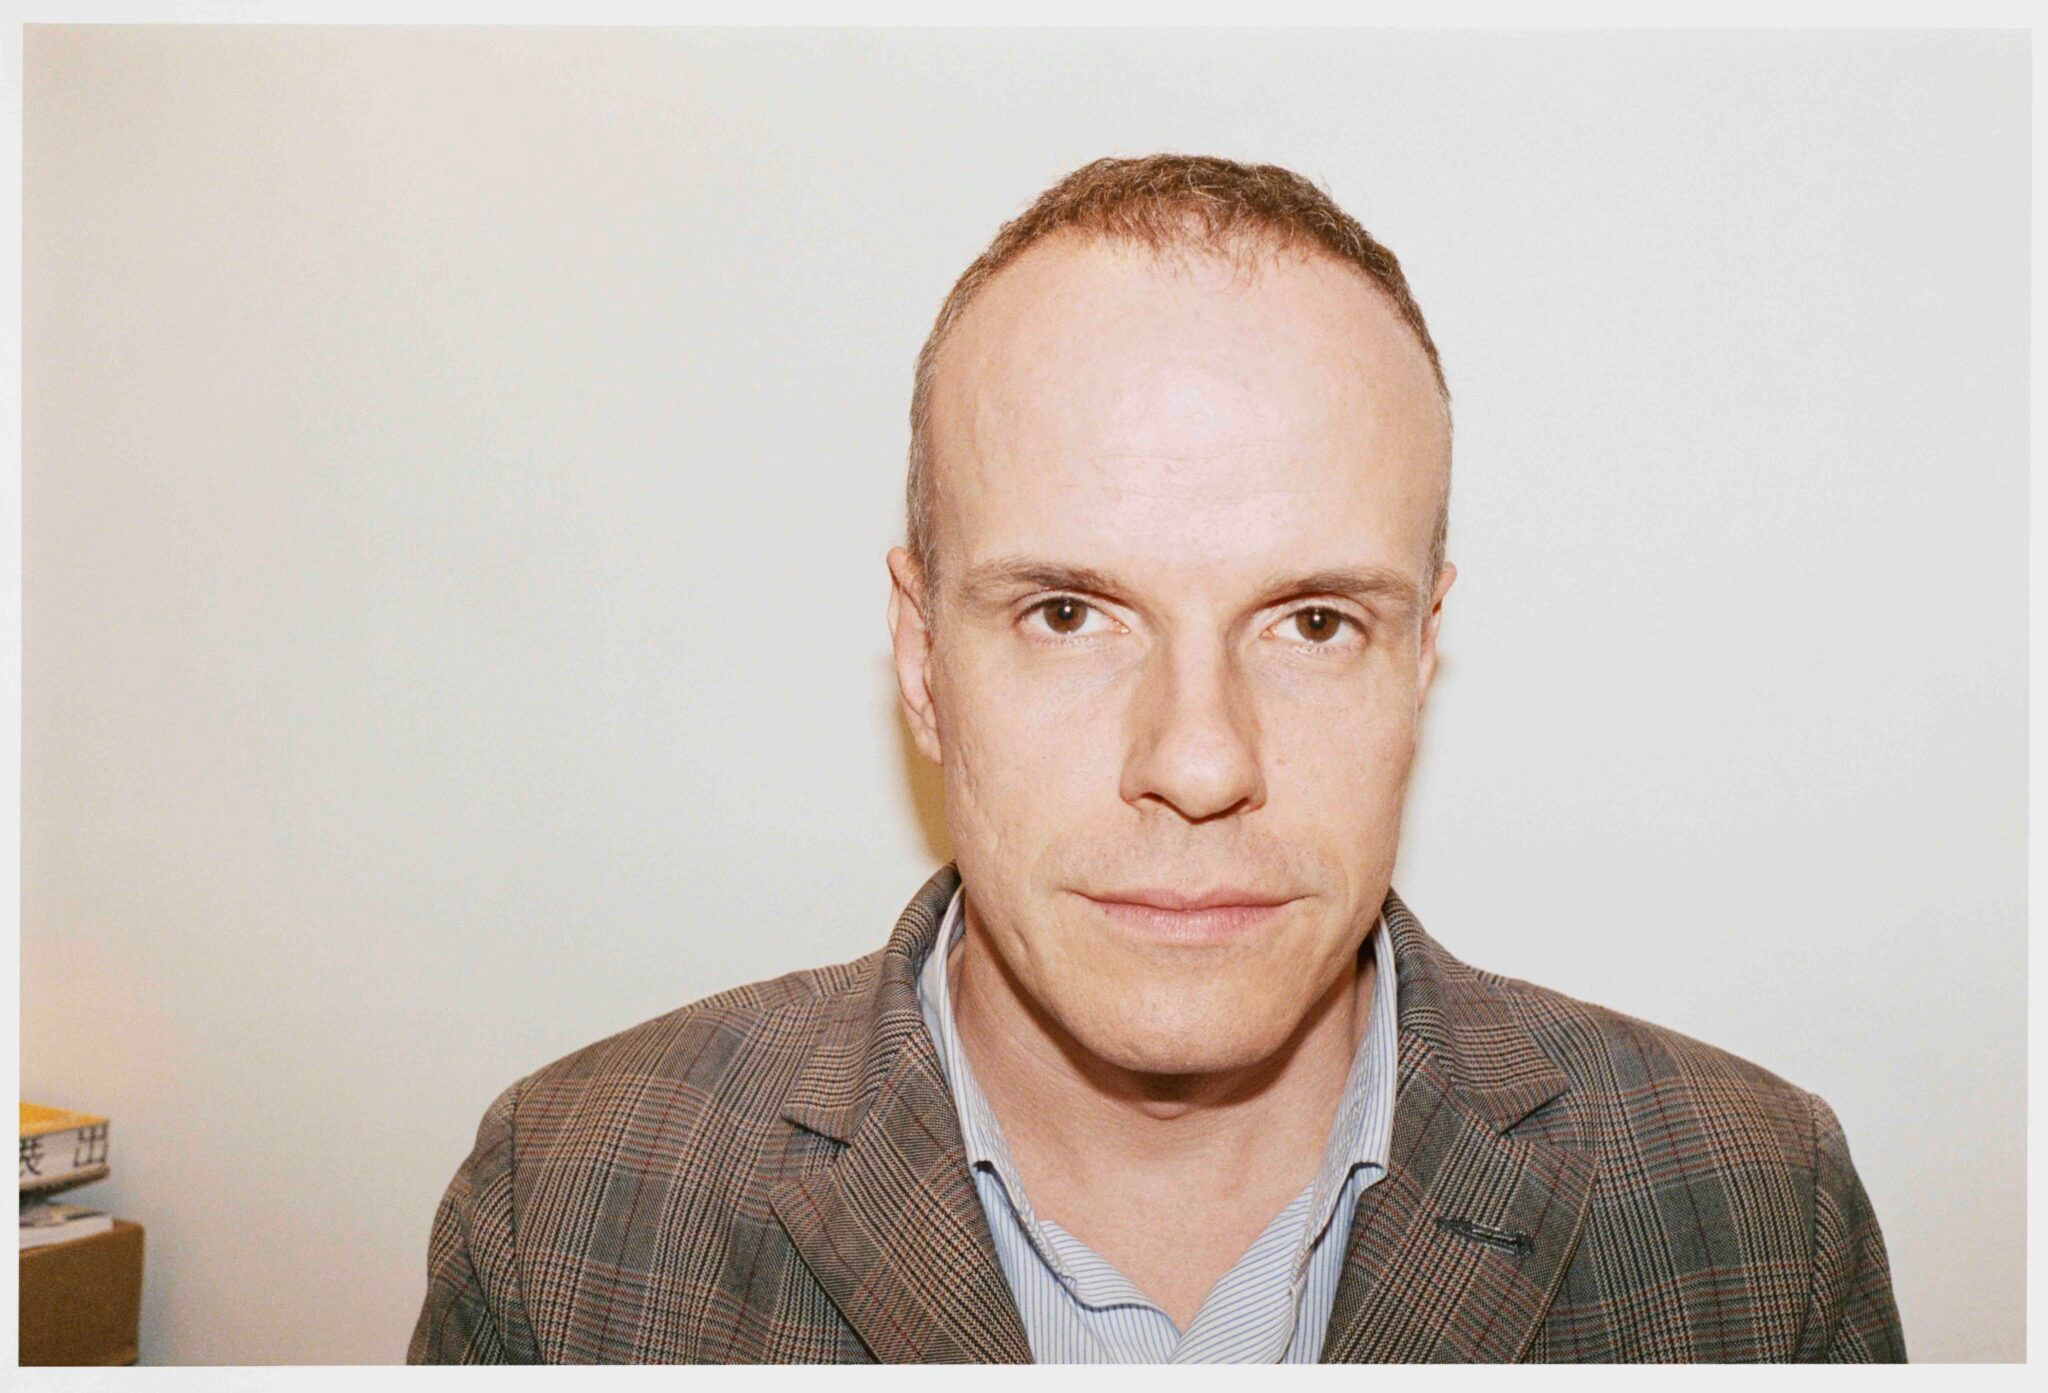 Hans-Ulricht Obrist, photographed by Jürgen Teller. Photo used with permission.